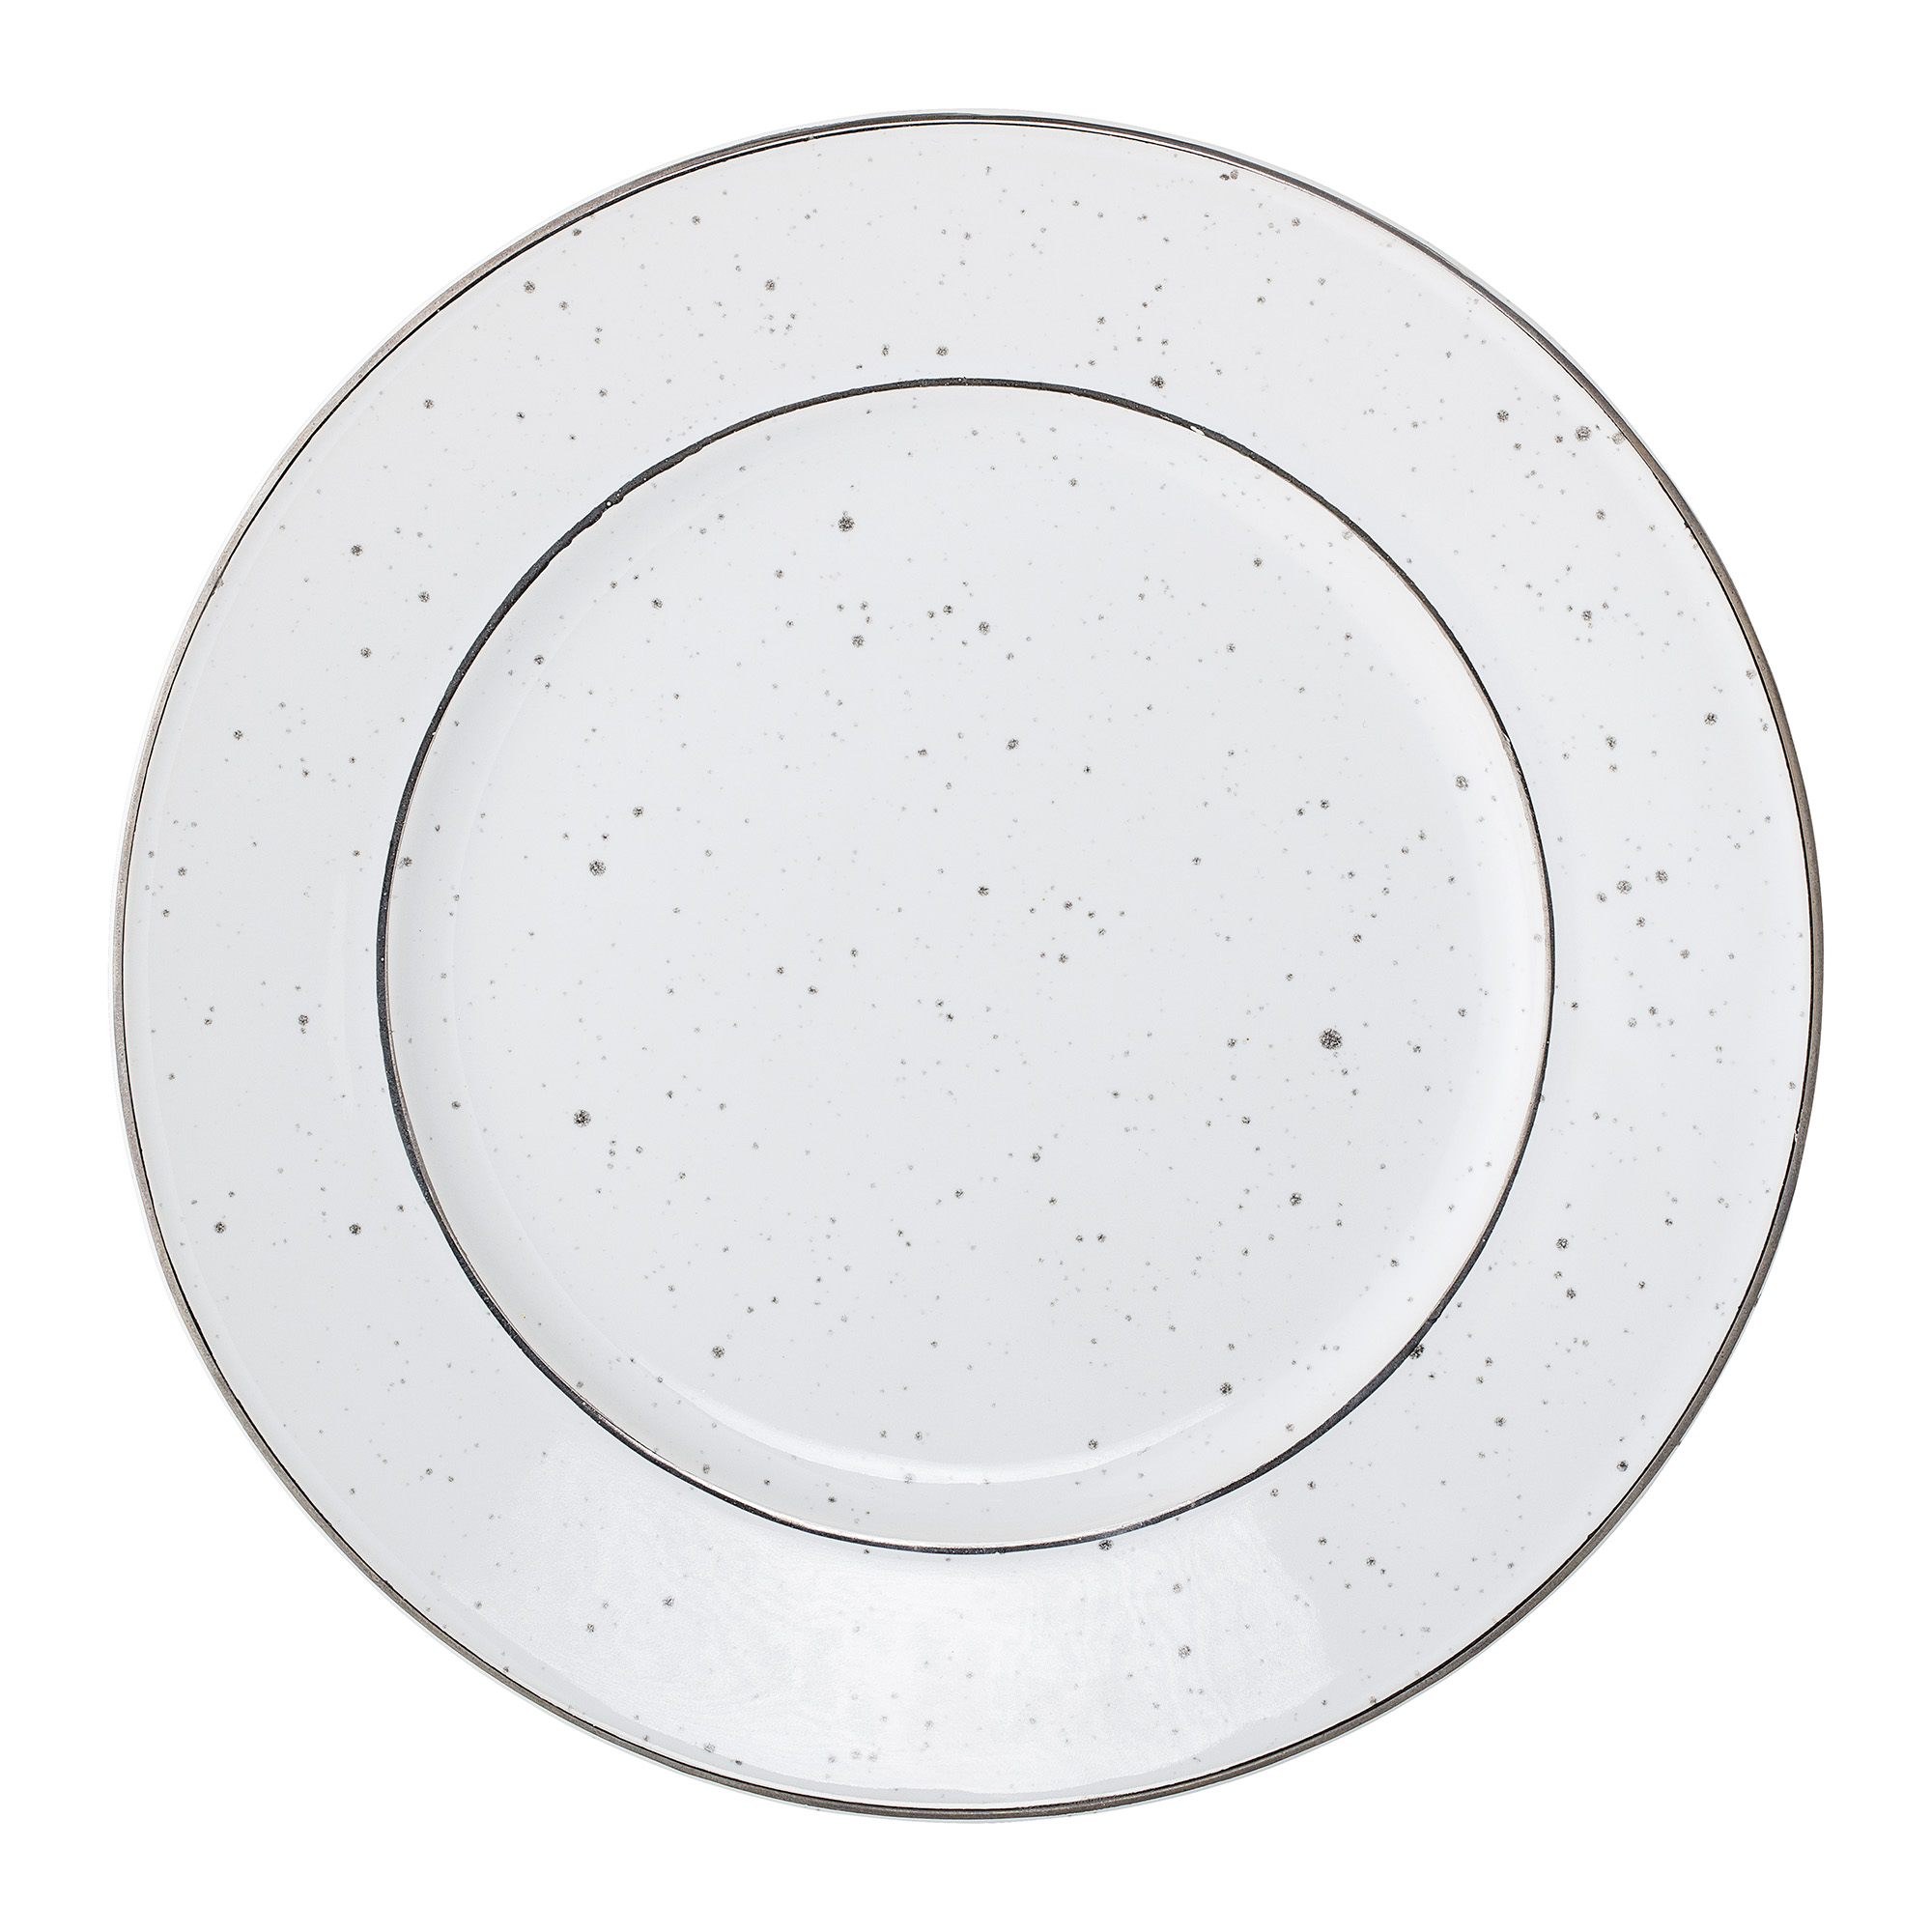 #008 White Fleck Side Plate    20cm Hire Price - £2.20 Minimum Order 3 Current Stock Available 60